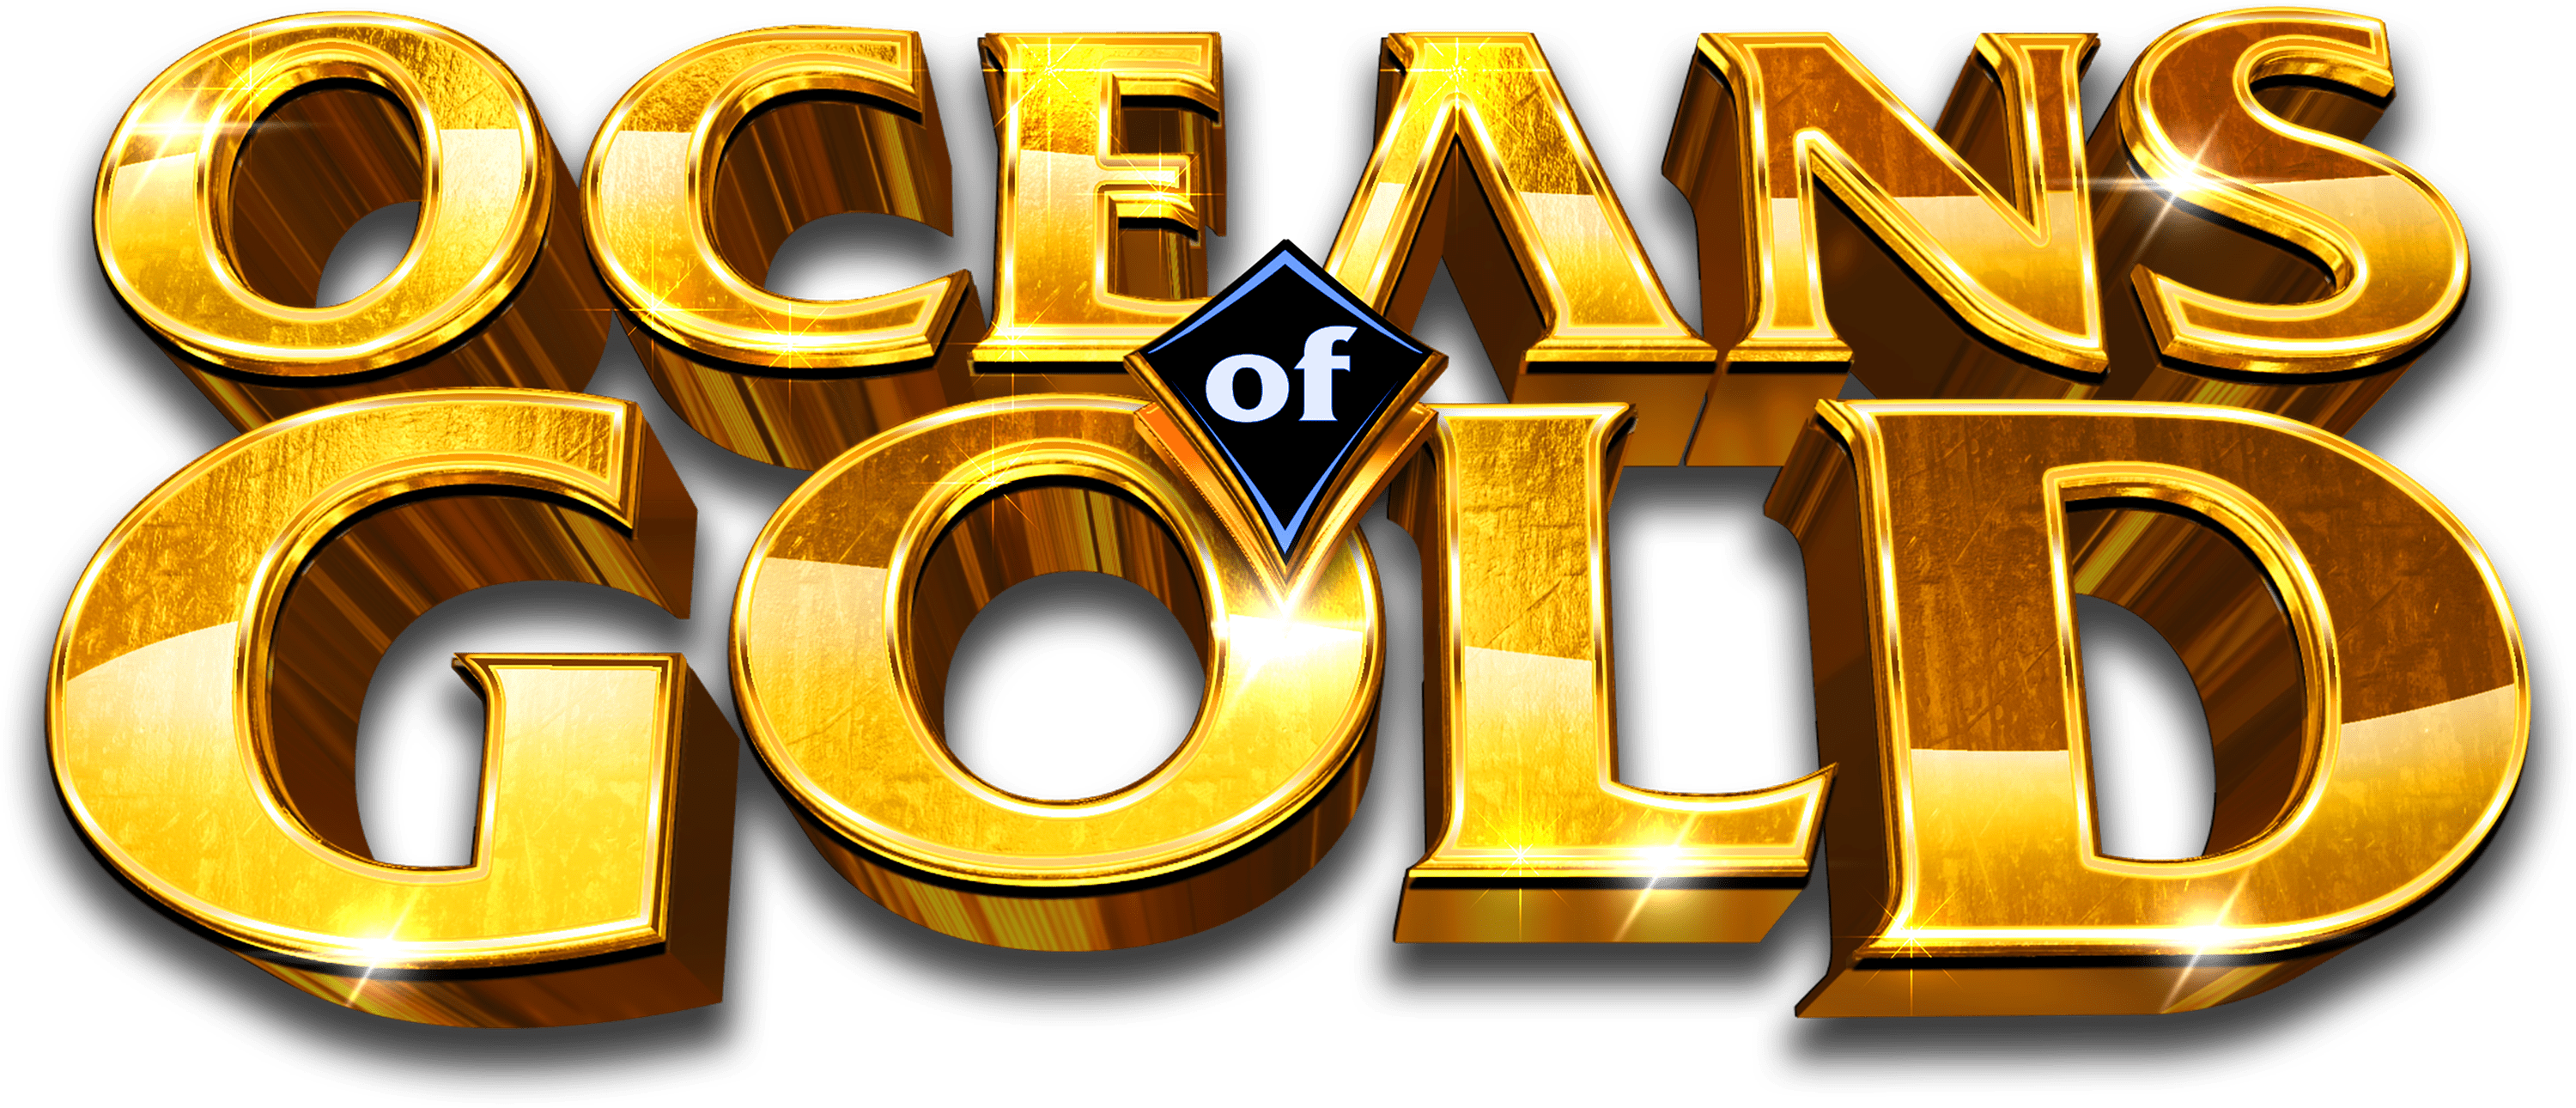 Oceans of Gold